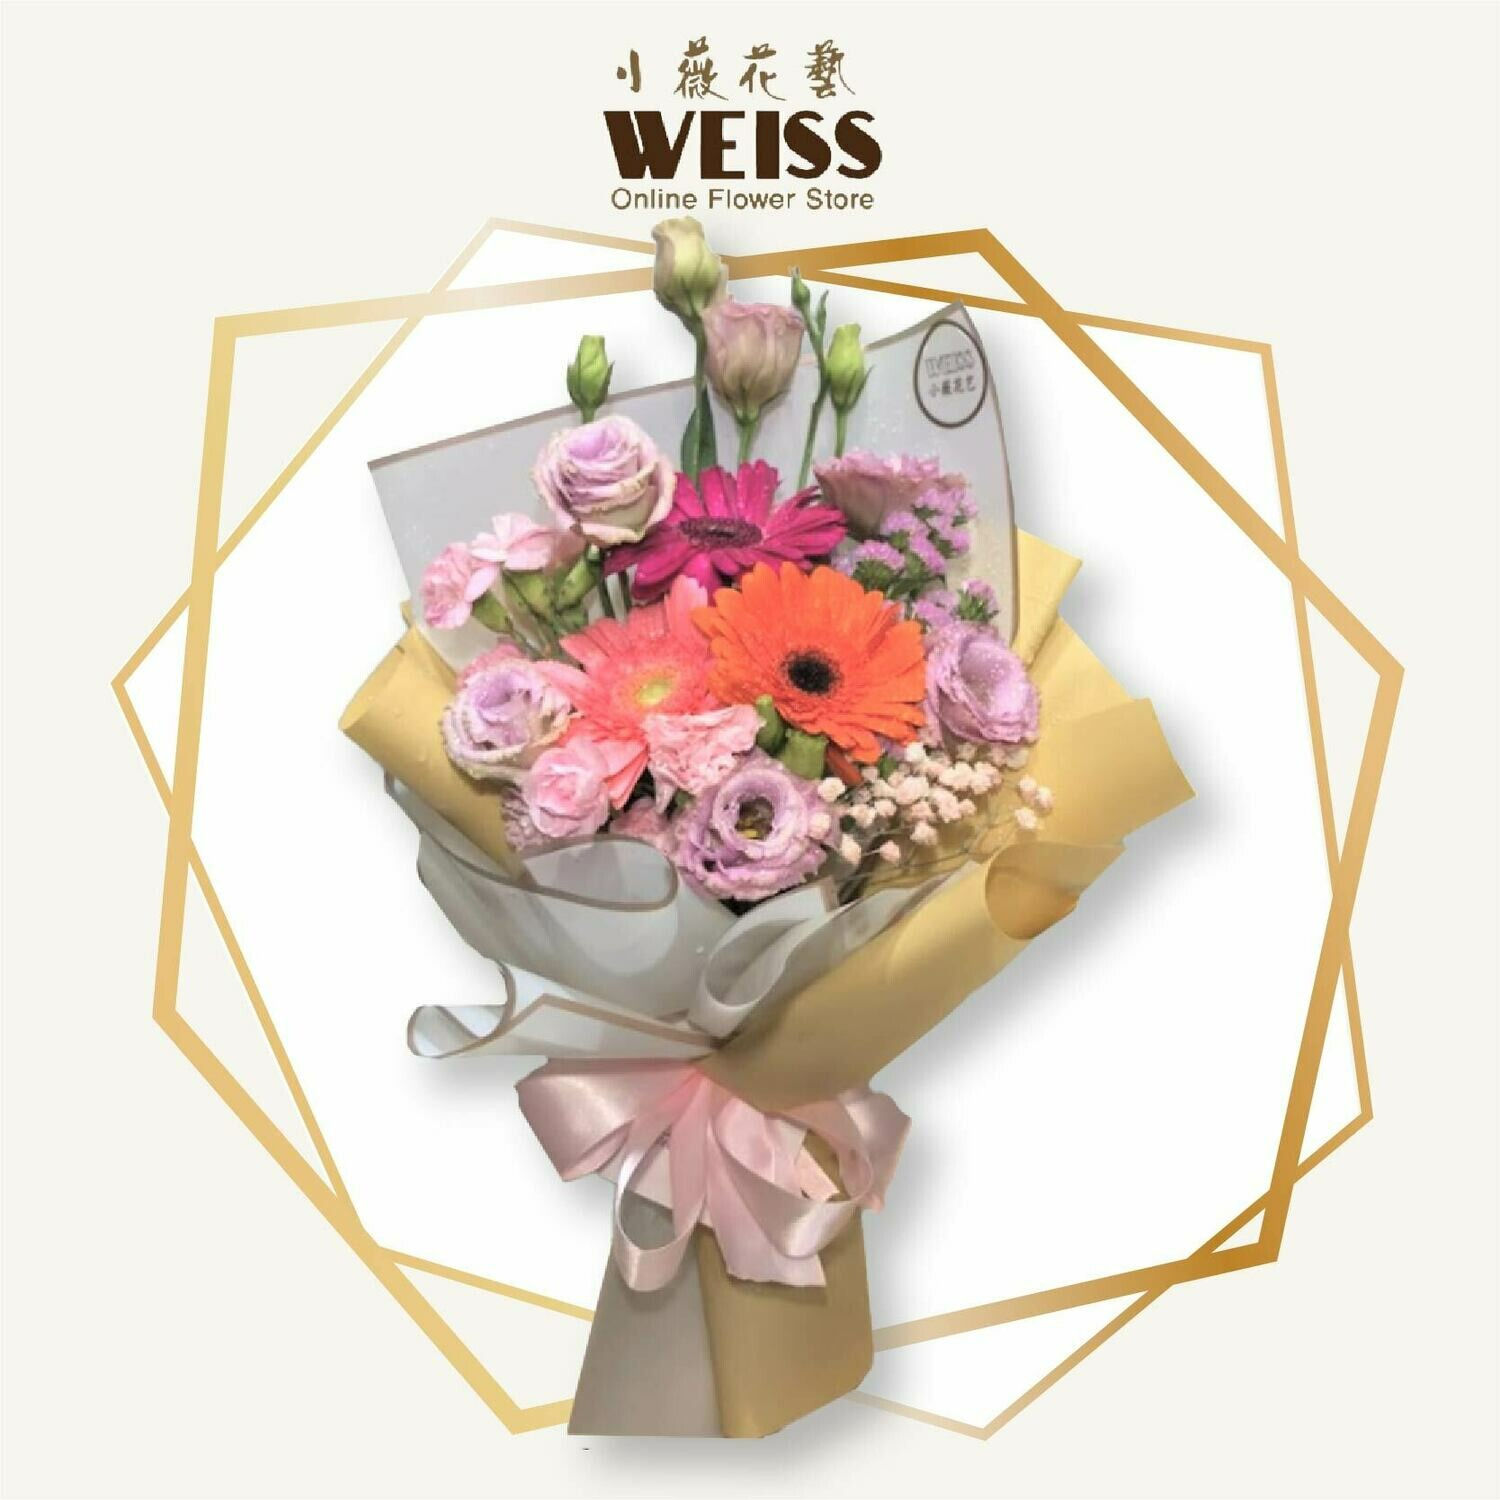 Weiss Florist 3stk Daisy (Free Shipping! Only deliver in JB)